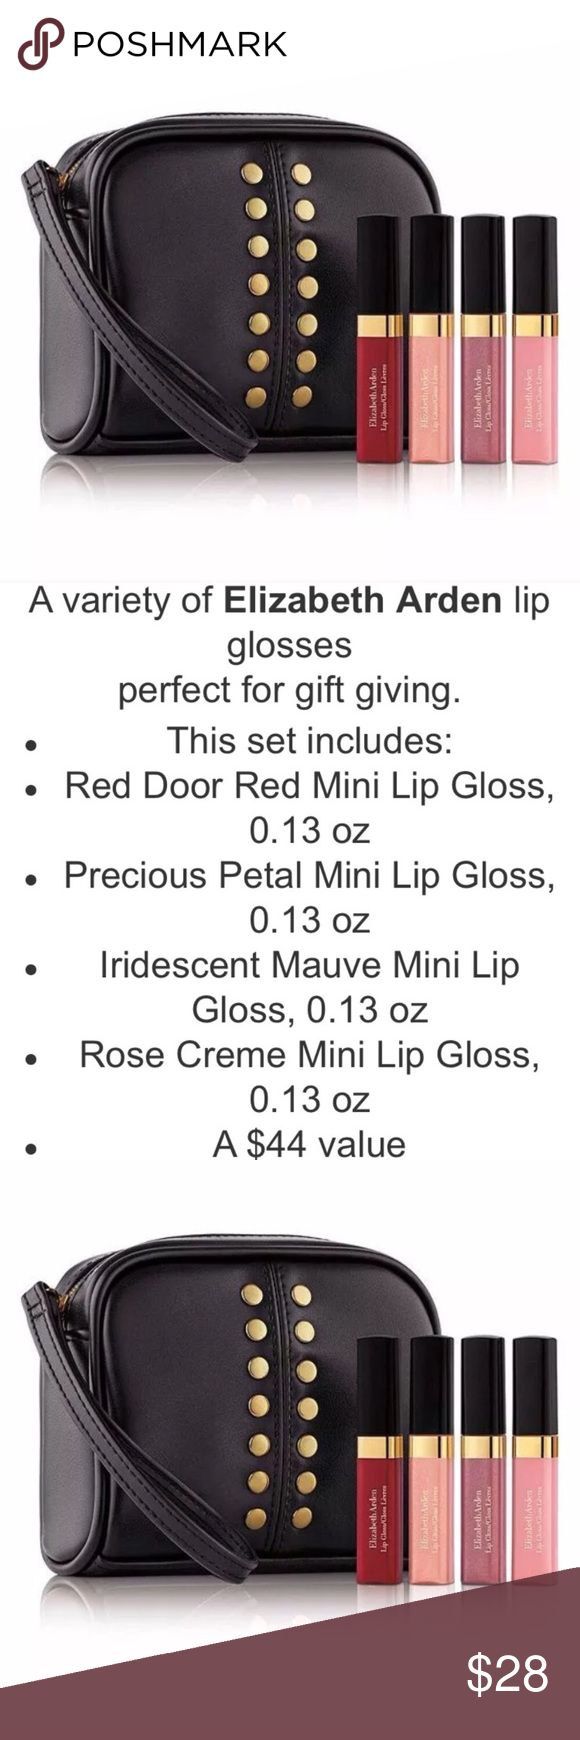 💄MOM Lip Gloss Gift Set Bag Petal Mauve Pink Red Elizabeth Arden Lip Gloss Set! Brand new! Unopened!!! Authentic! Fresh! Fast Shipping! 🌷 ELIZABETH ARDEN Makeup Lip Balm & Gloss